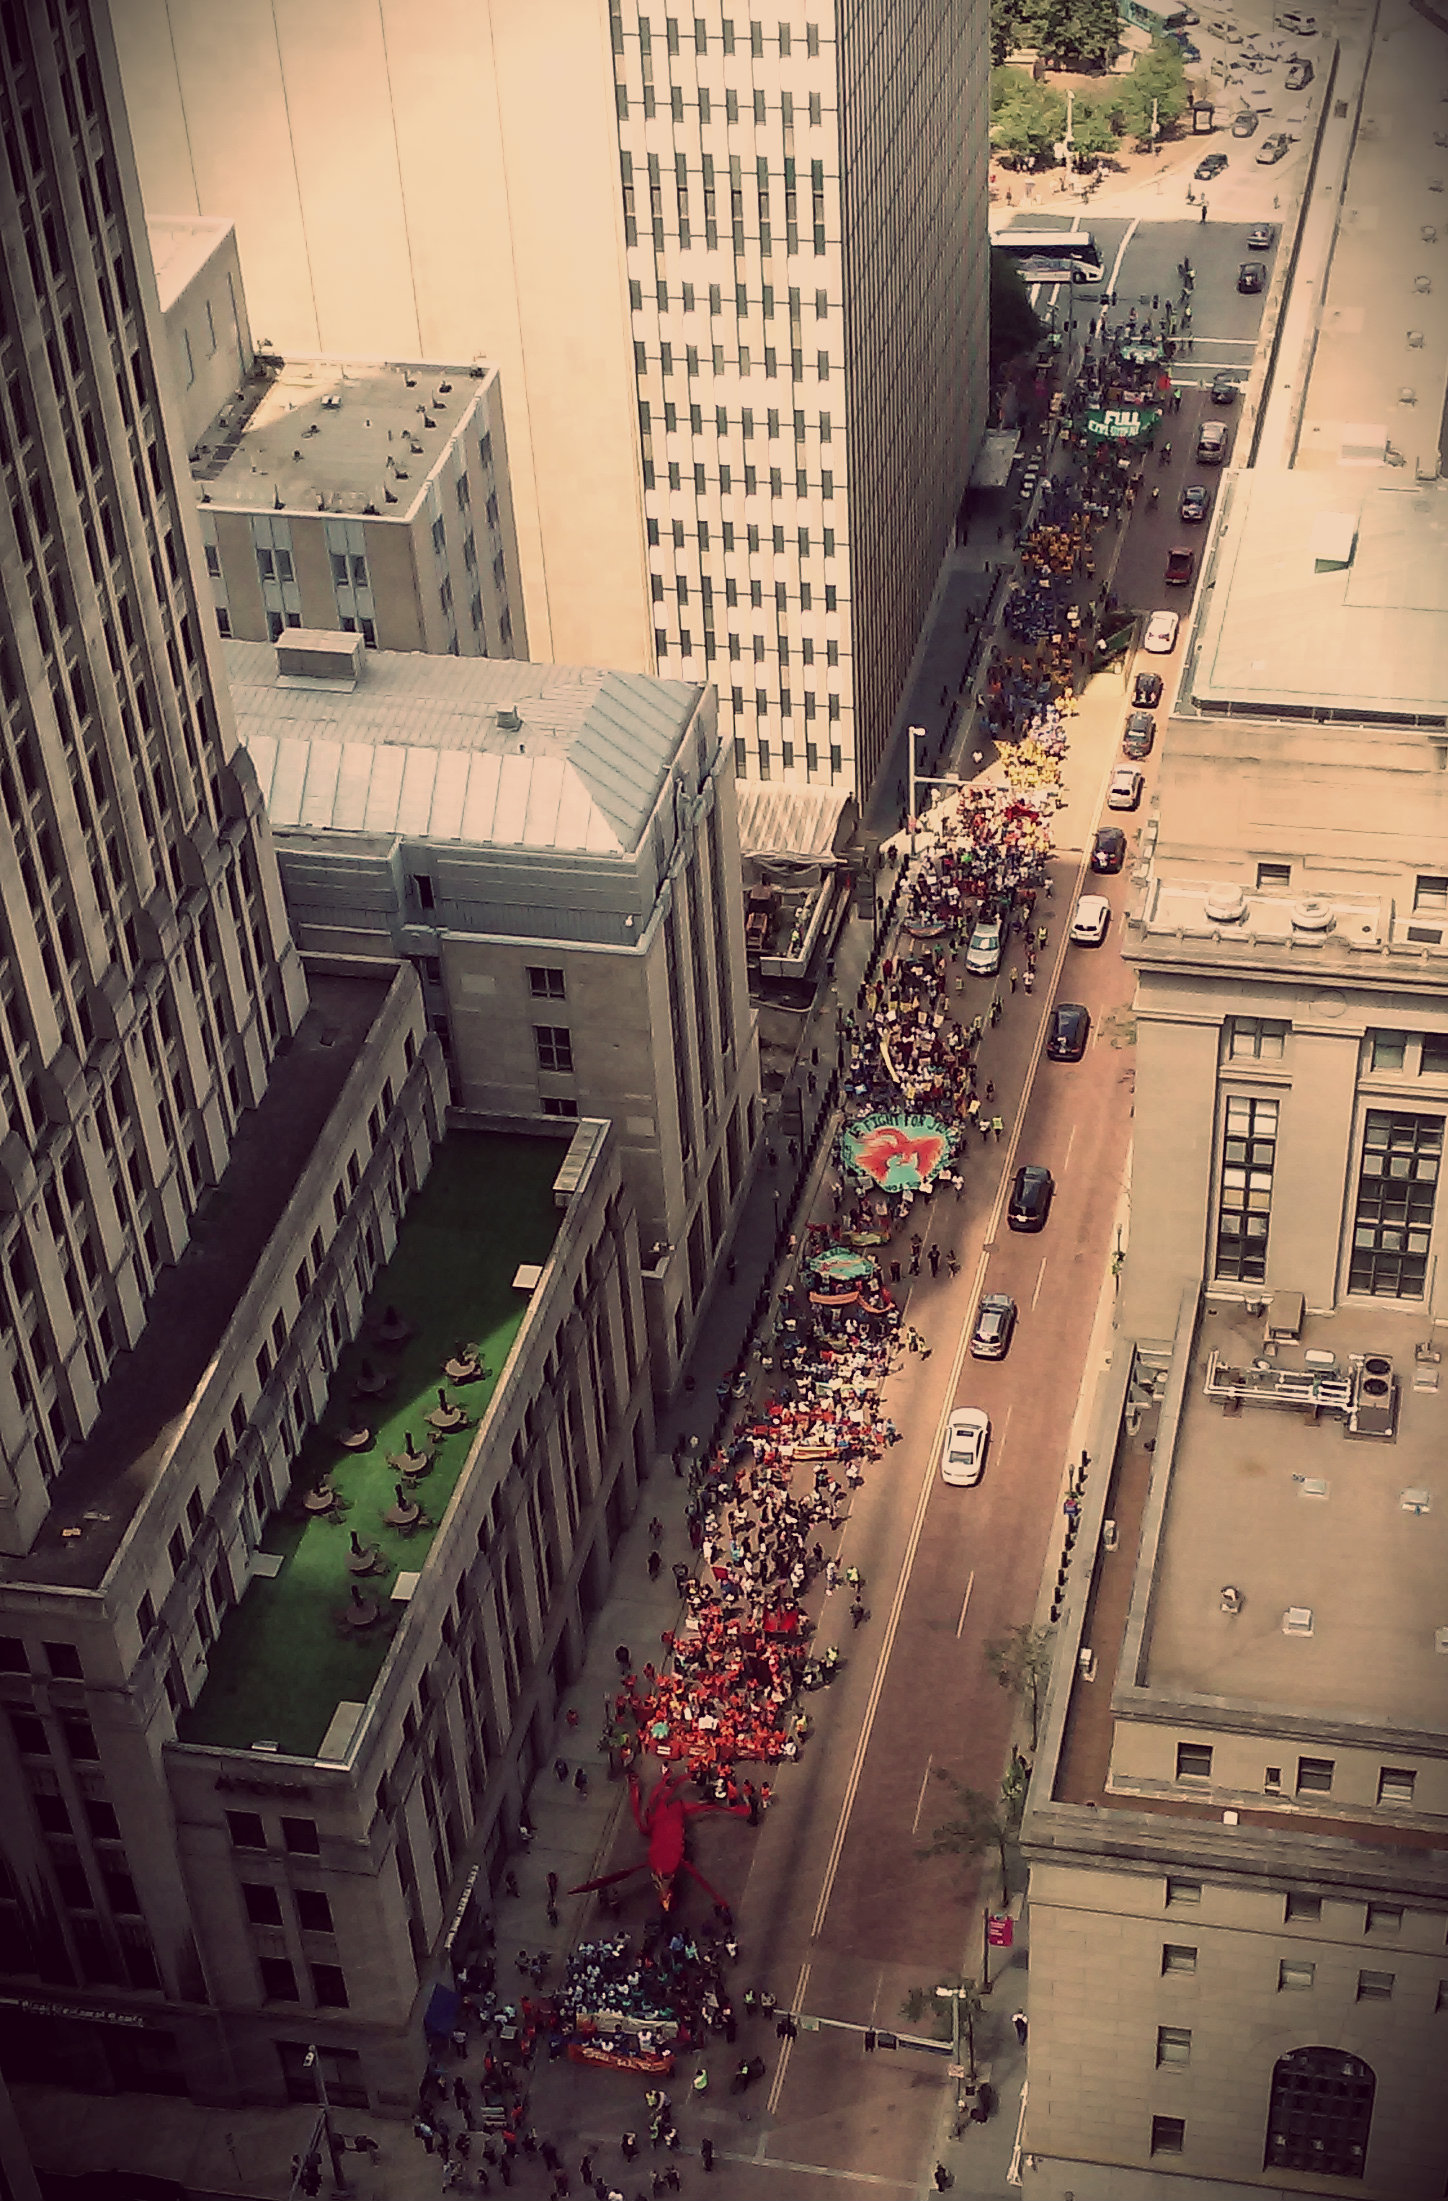 A photo of a protest in Pittsburgh, taken from the USX tower